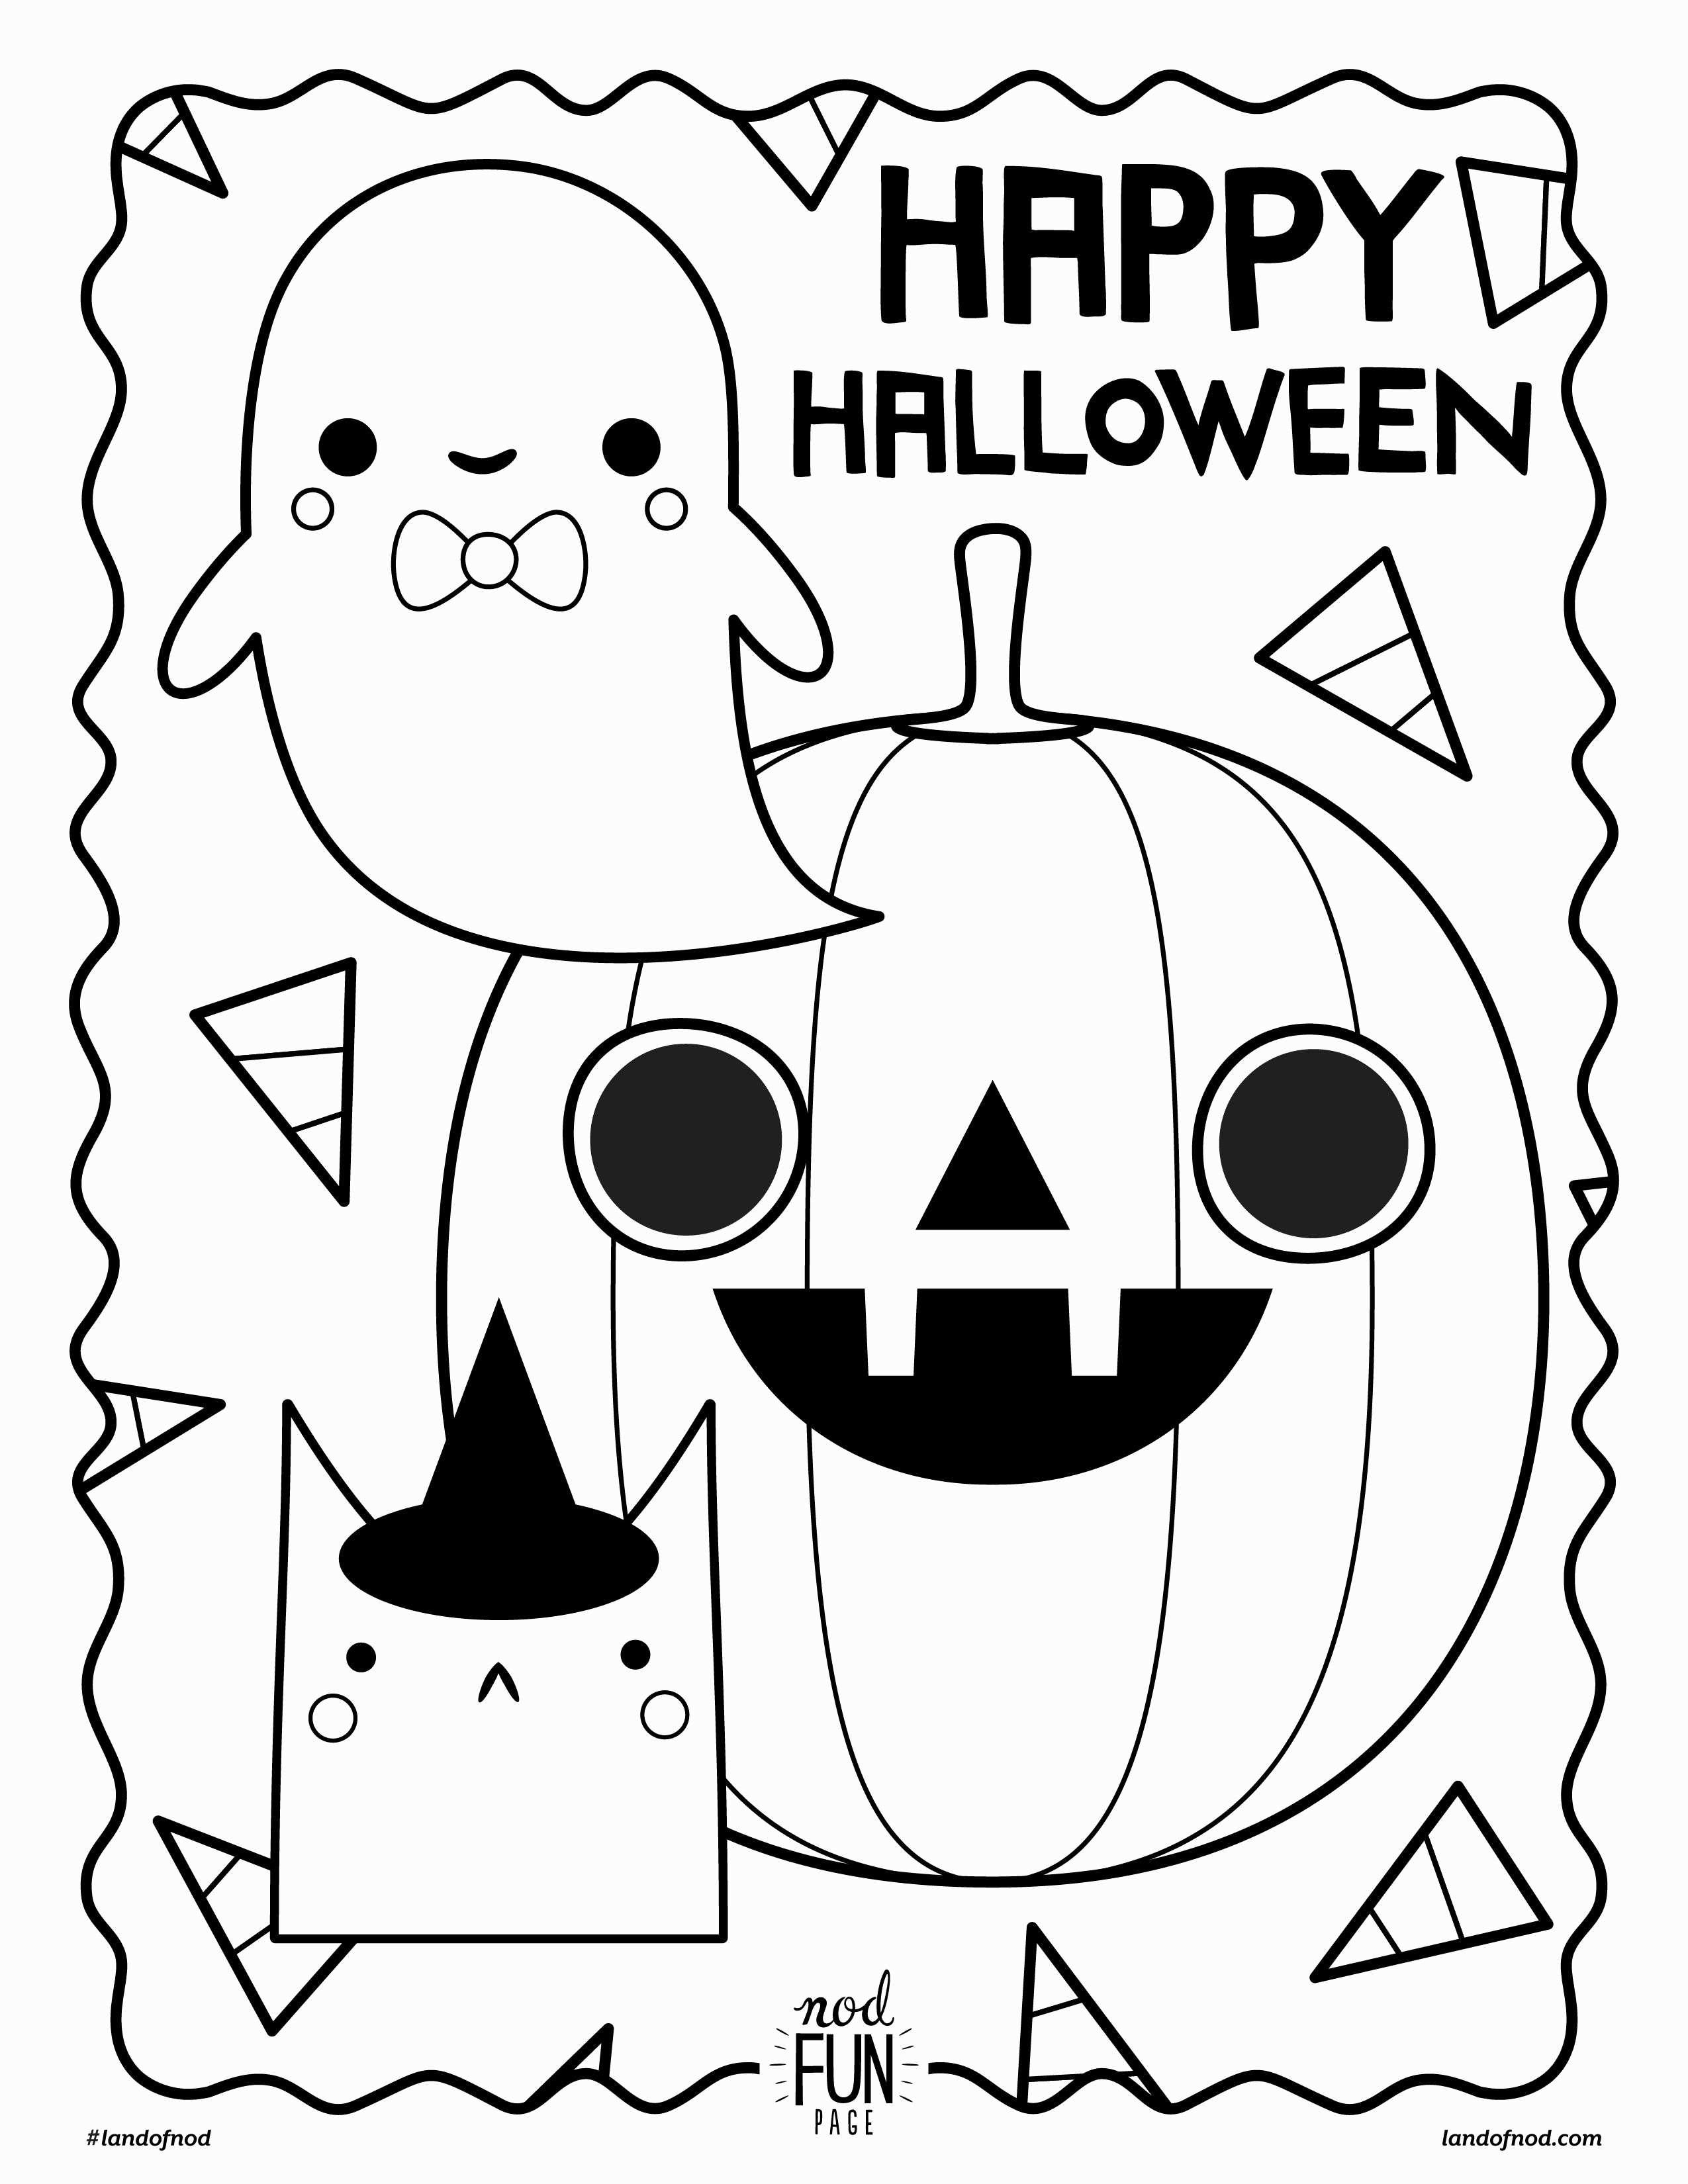 printable halloween coloring pages free halloween coloring pages for kids or for the kid in you halloween printable pages coloring